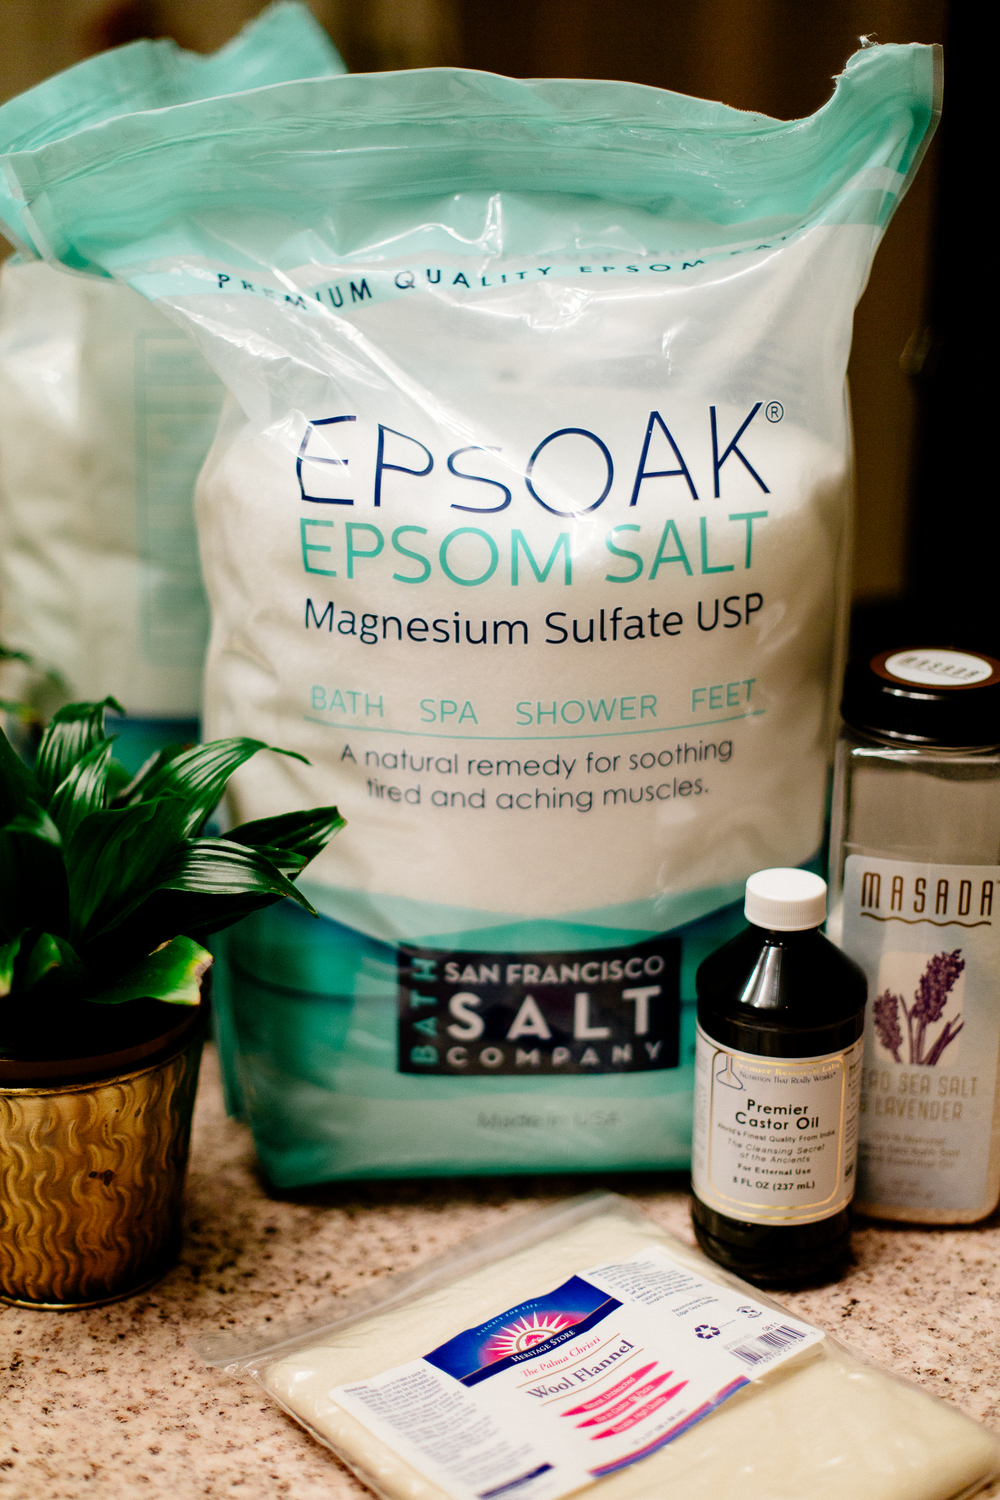 My eco size Epsom Salt, buh-bye sore muscles!